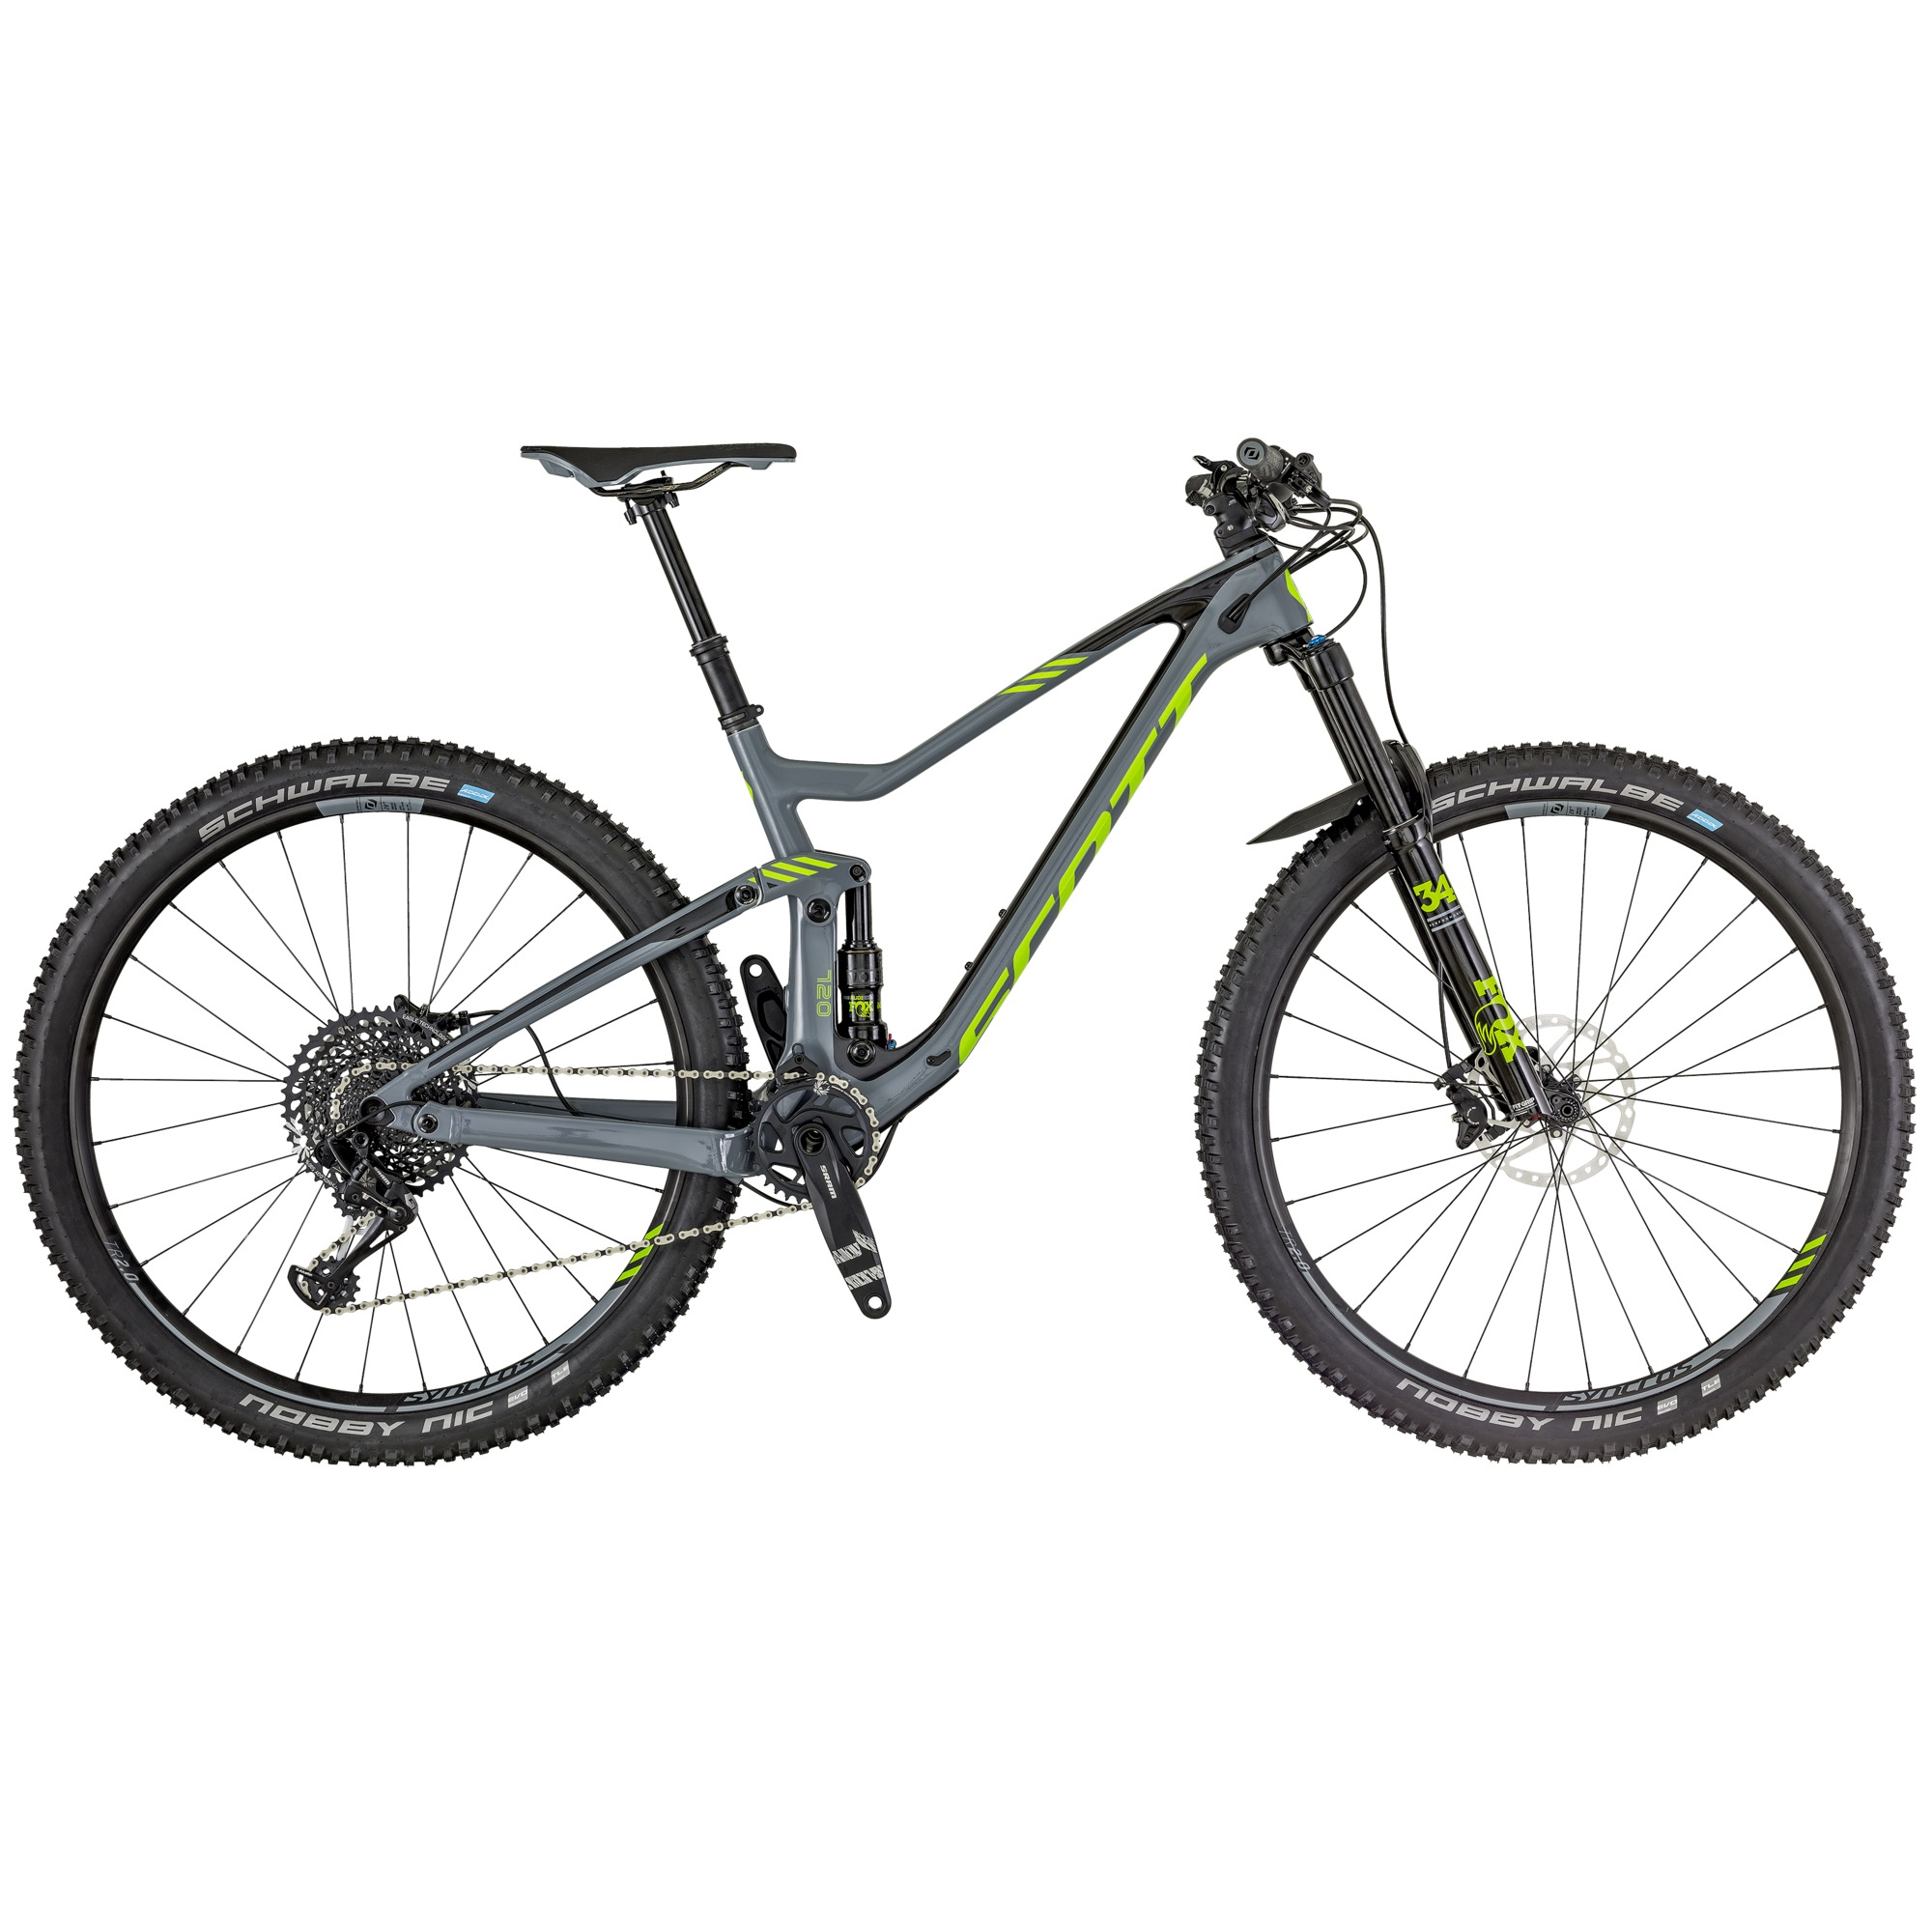 SCOTT Genius 920 Bike S - Zweirad Homann